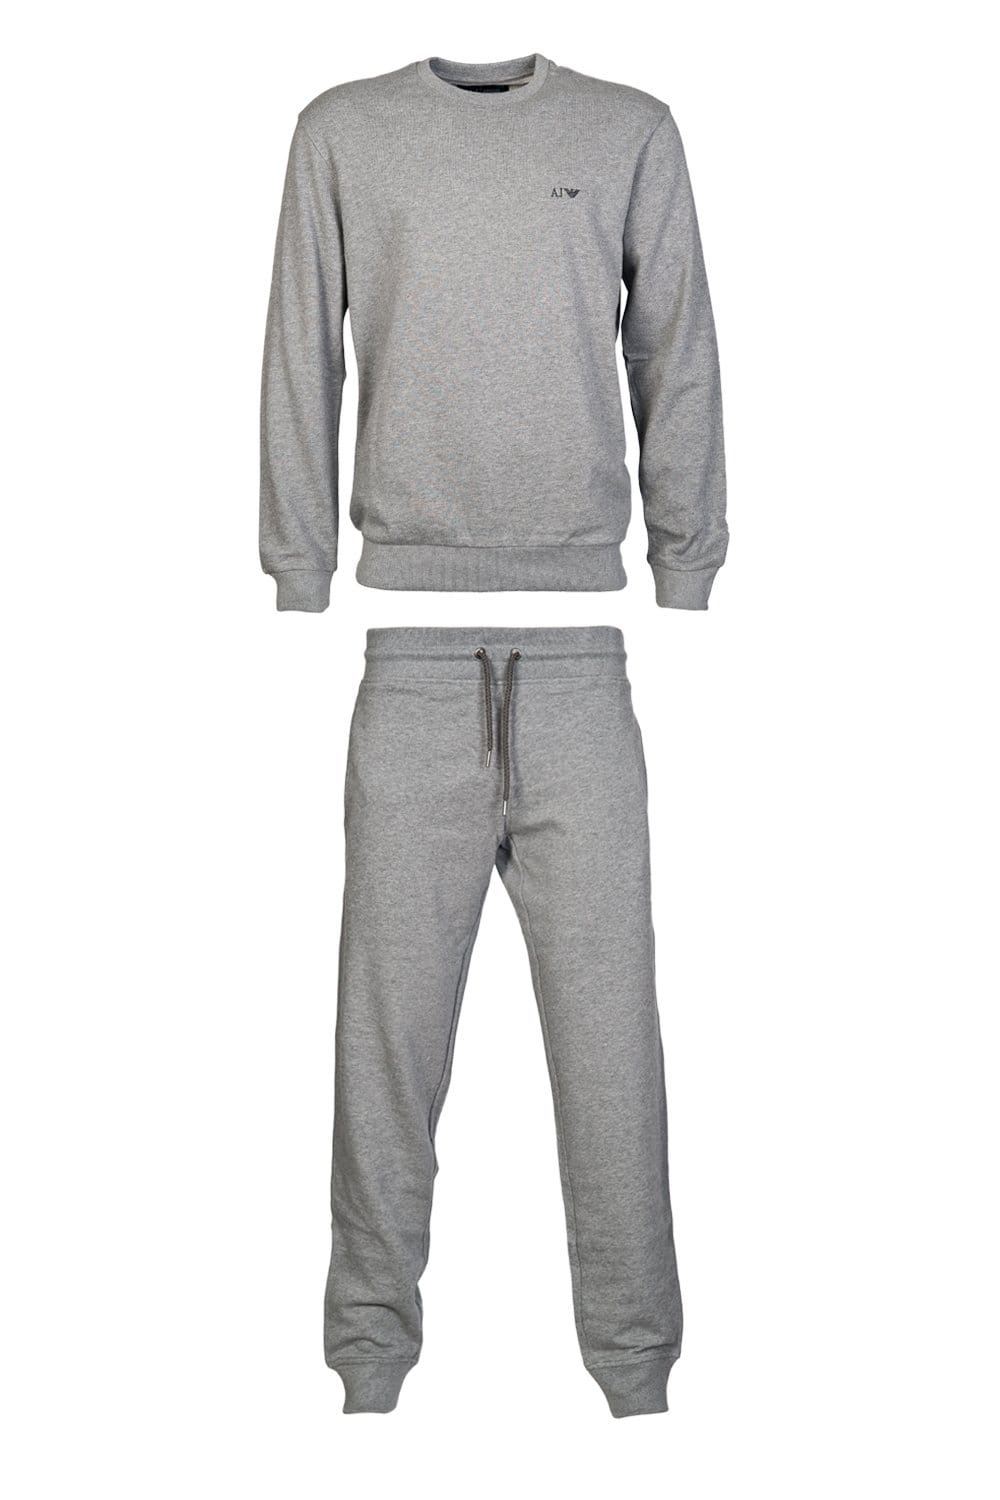 ea7 cotton tracksuit